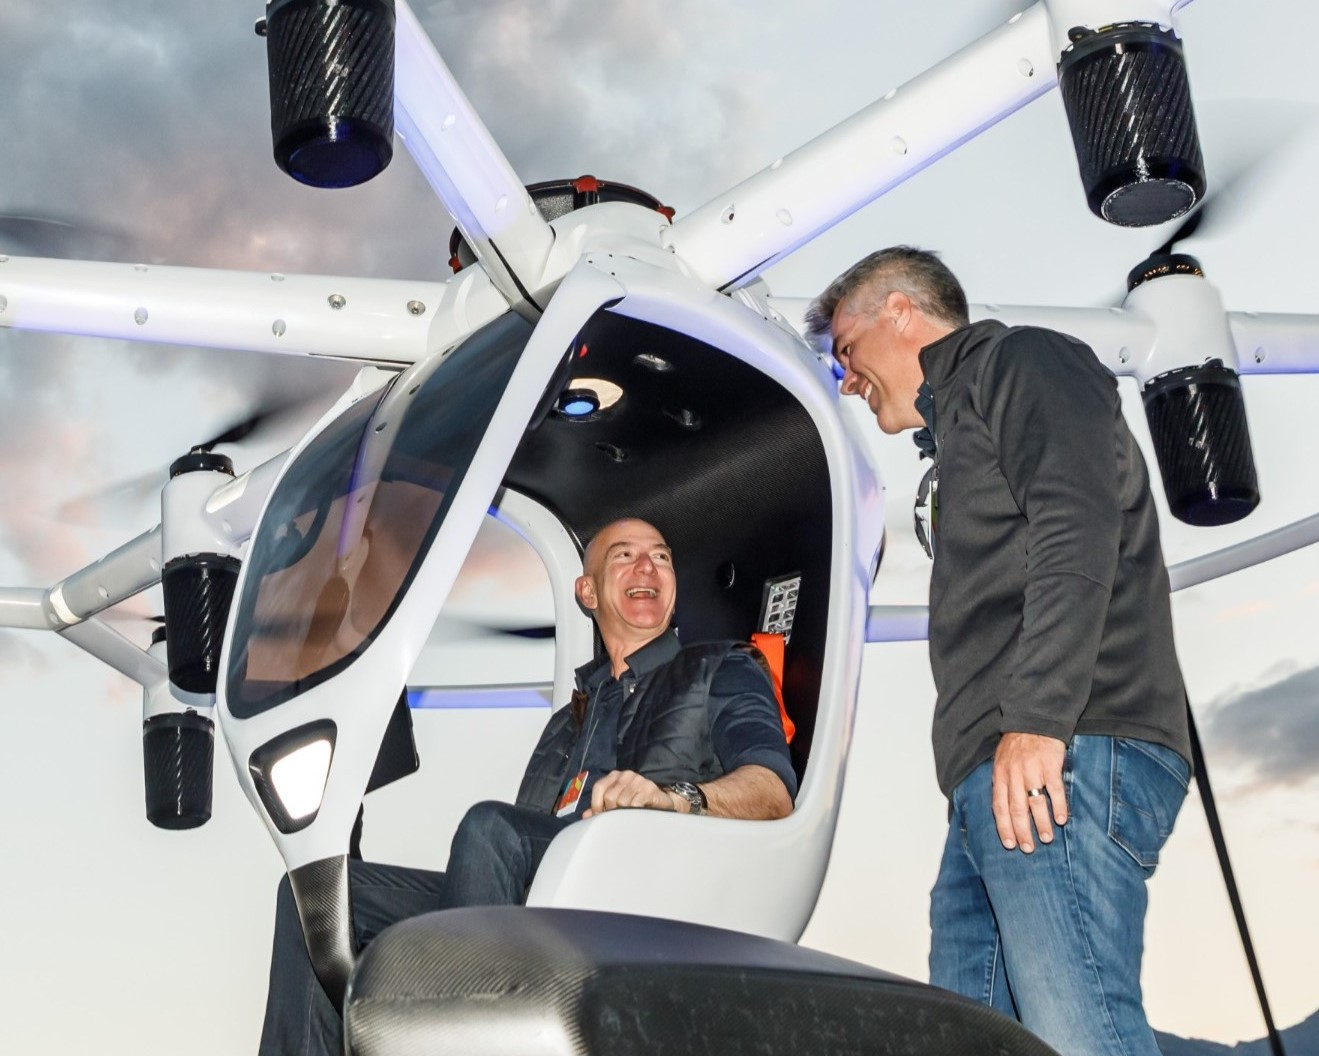 Lift Aircraft Says 13 000 People Have Signed Up For Drone Rides Geekwire